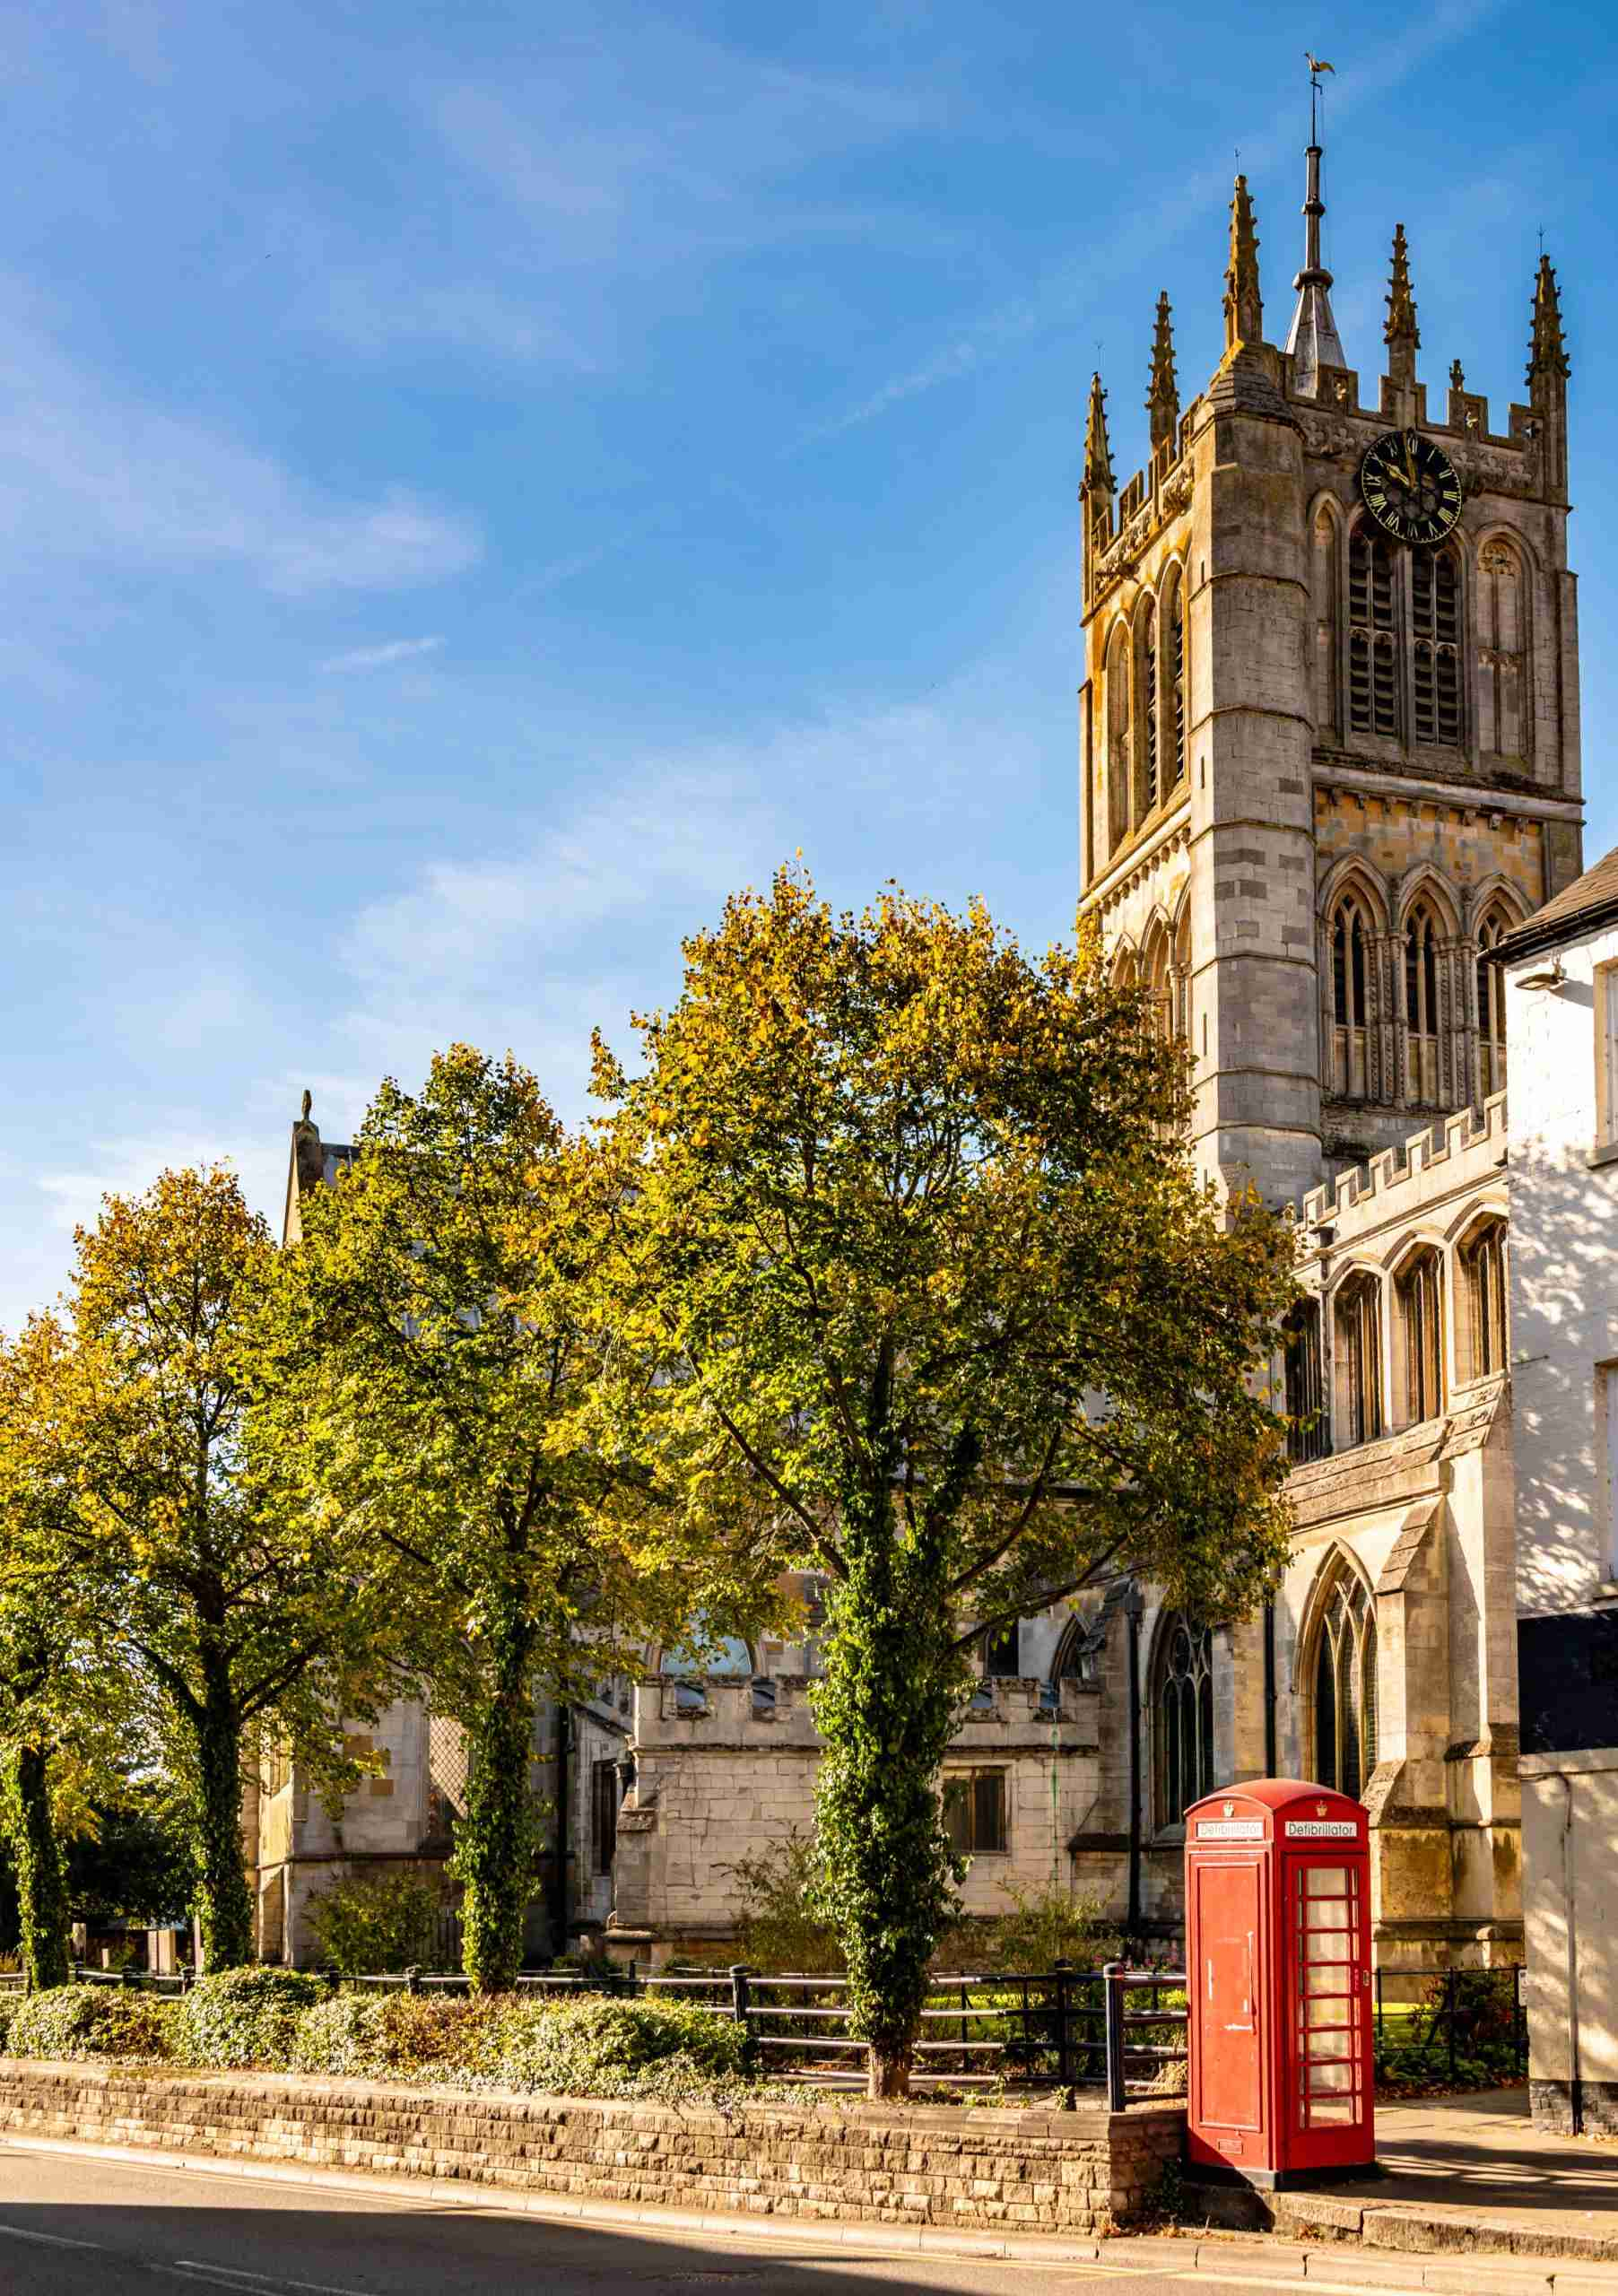 Saint Marys Church in the town of Melton Mowbray in Leicestershire